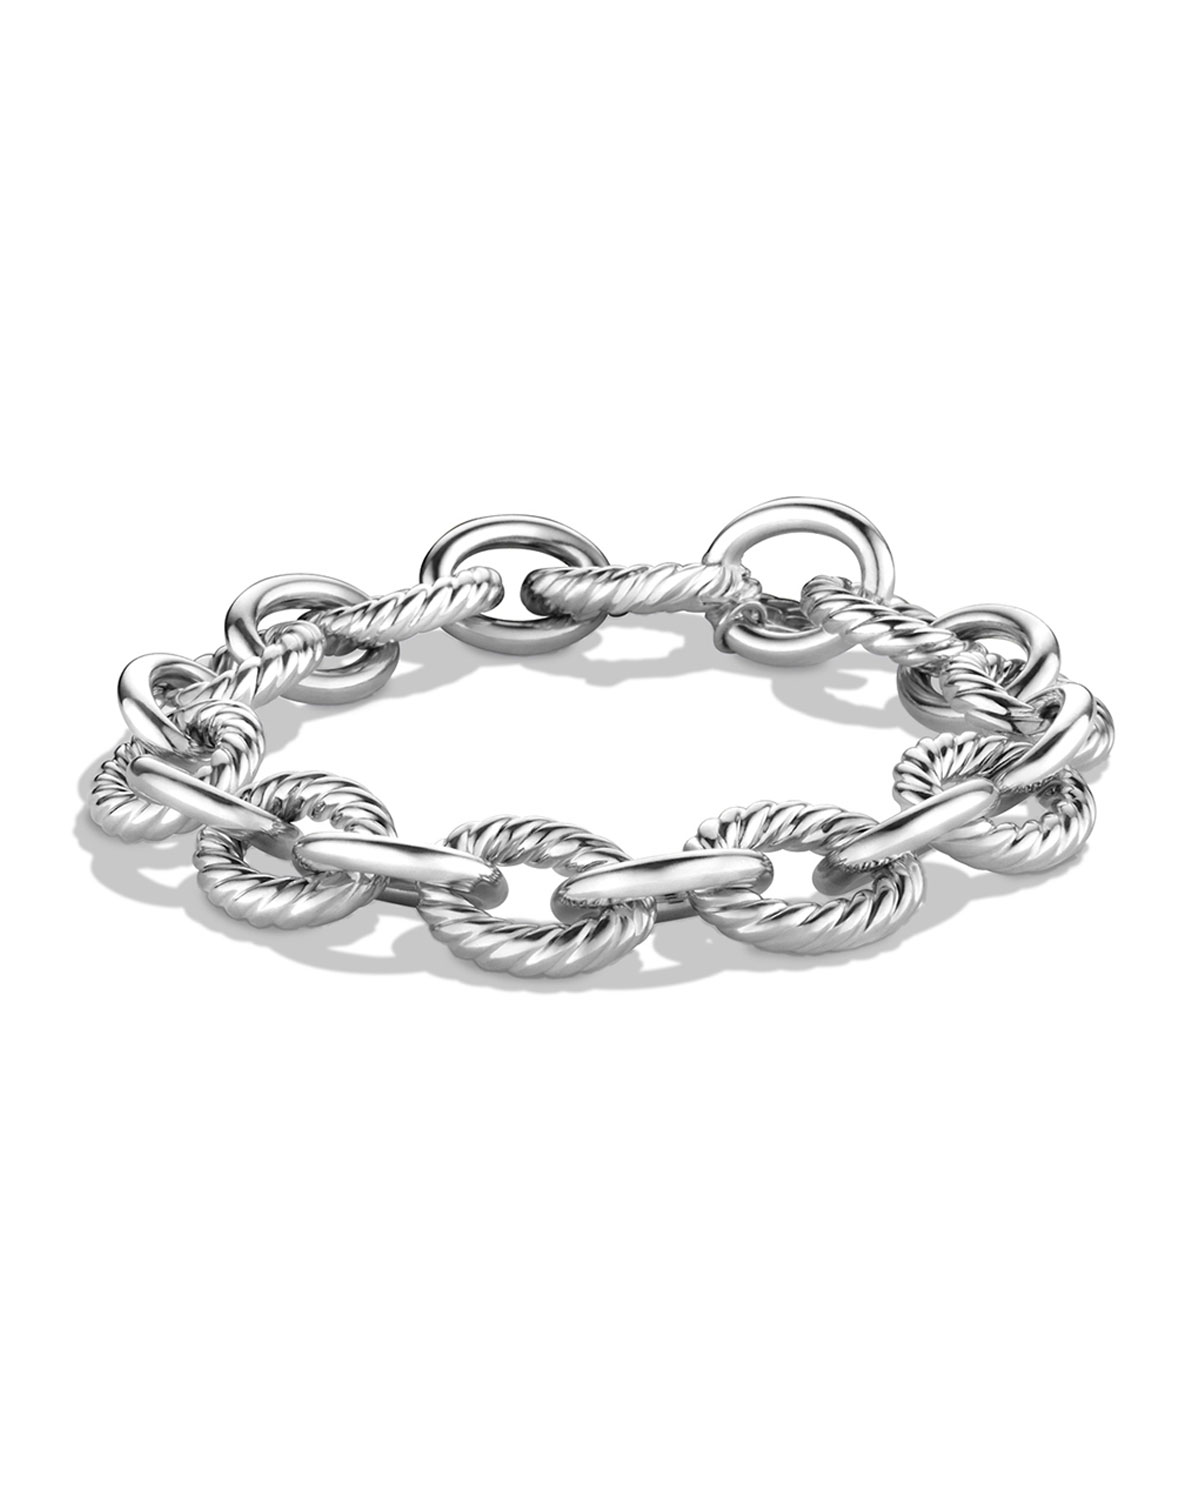 silver plain safety il sterling bangles hinged p solid with bangle lock chain fullxfull bracelet